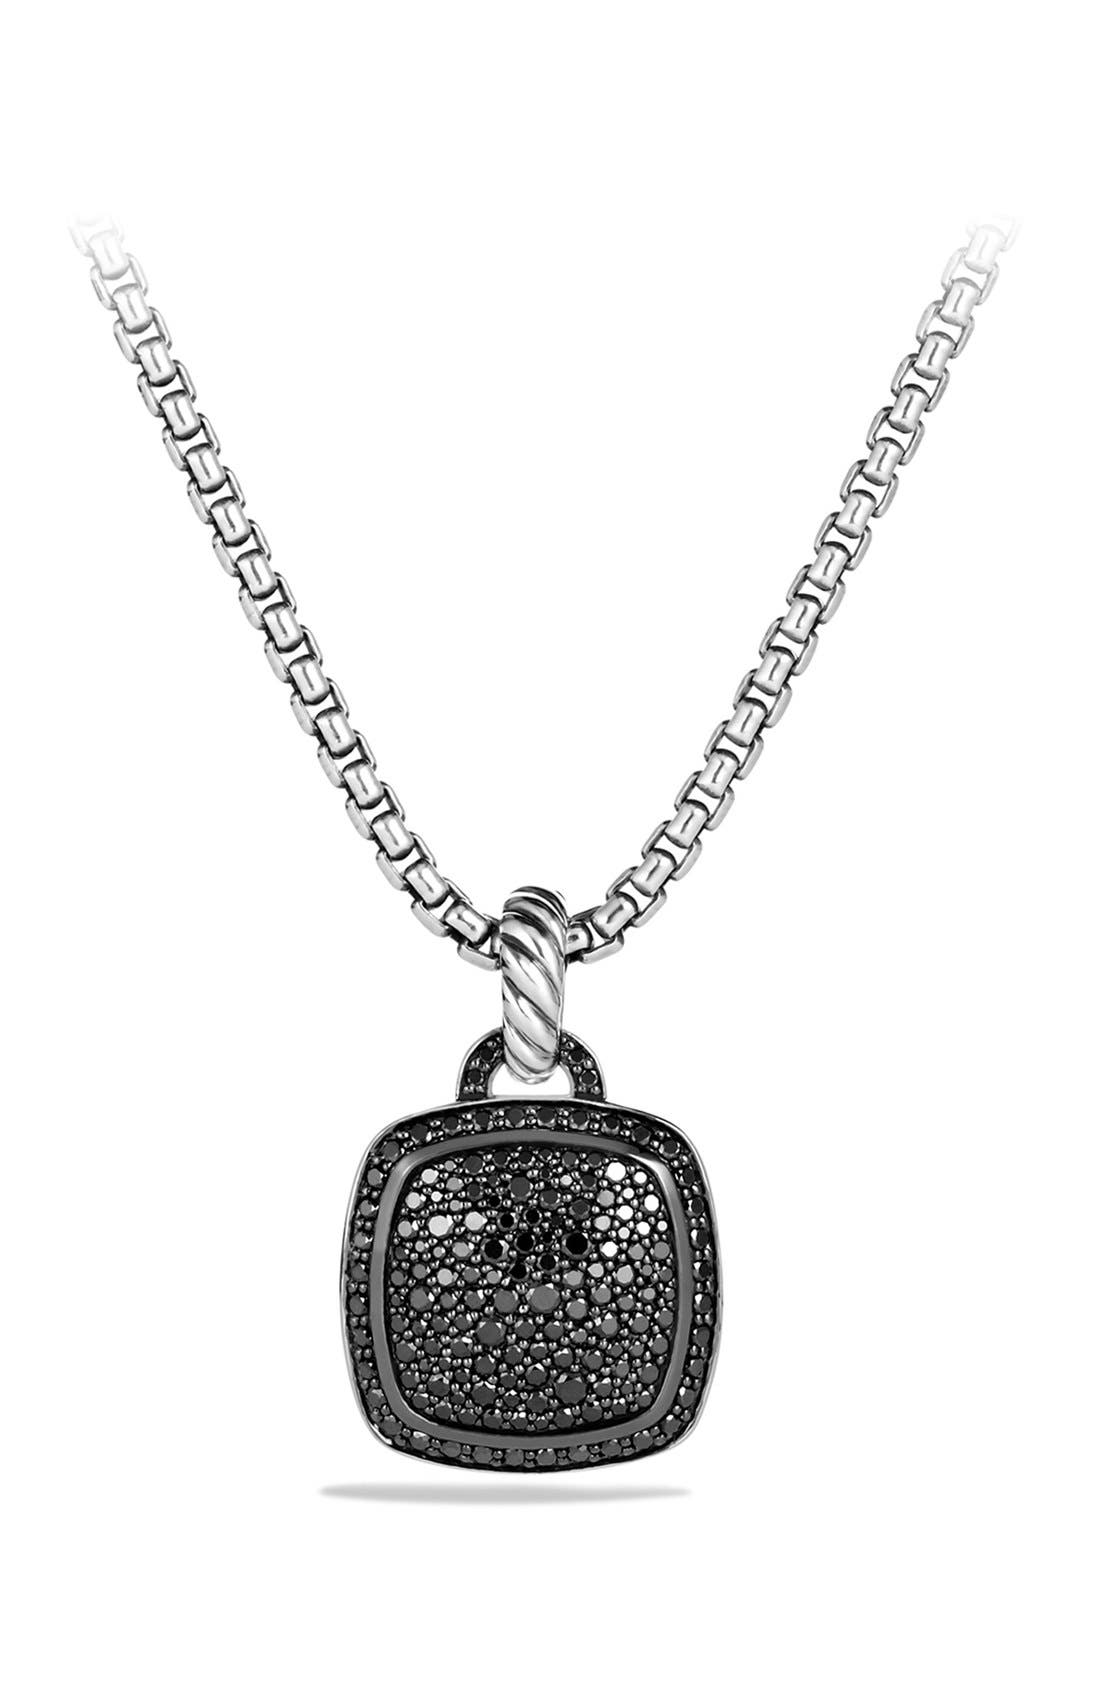 David Yurman 'Albion' Pendant with Diamonds